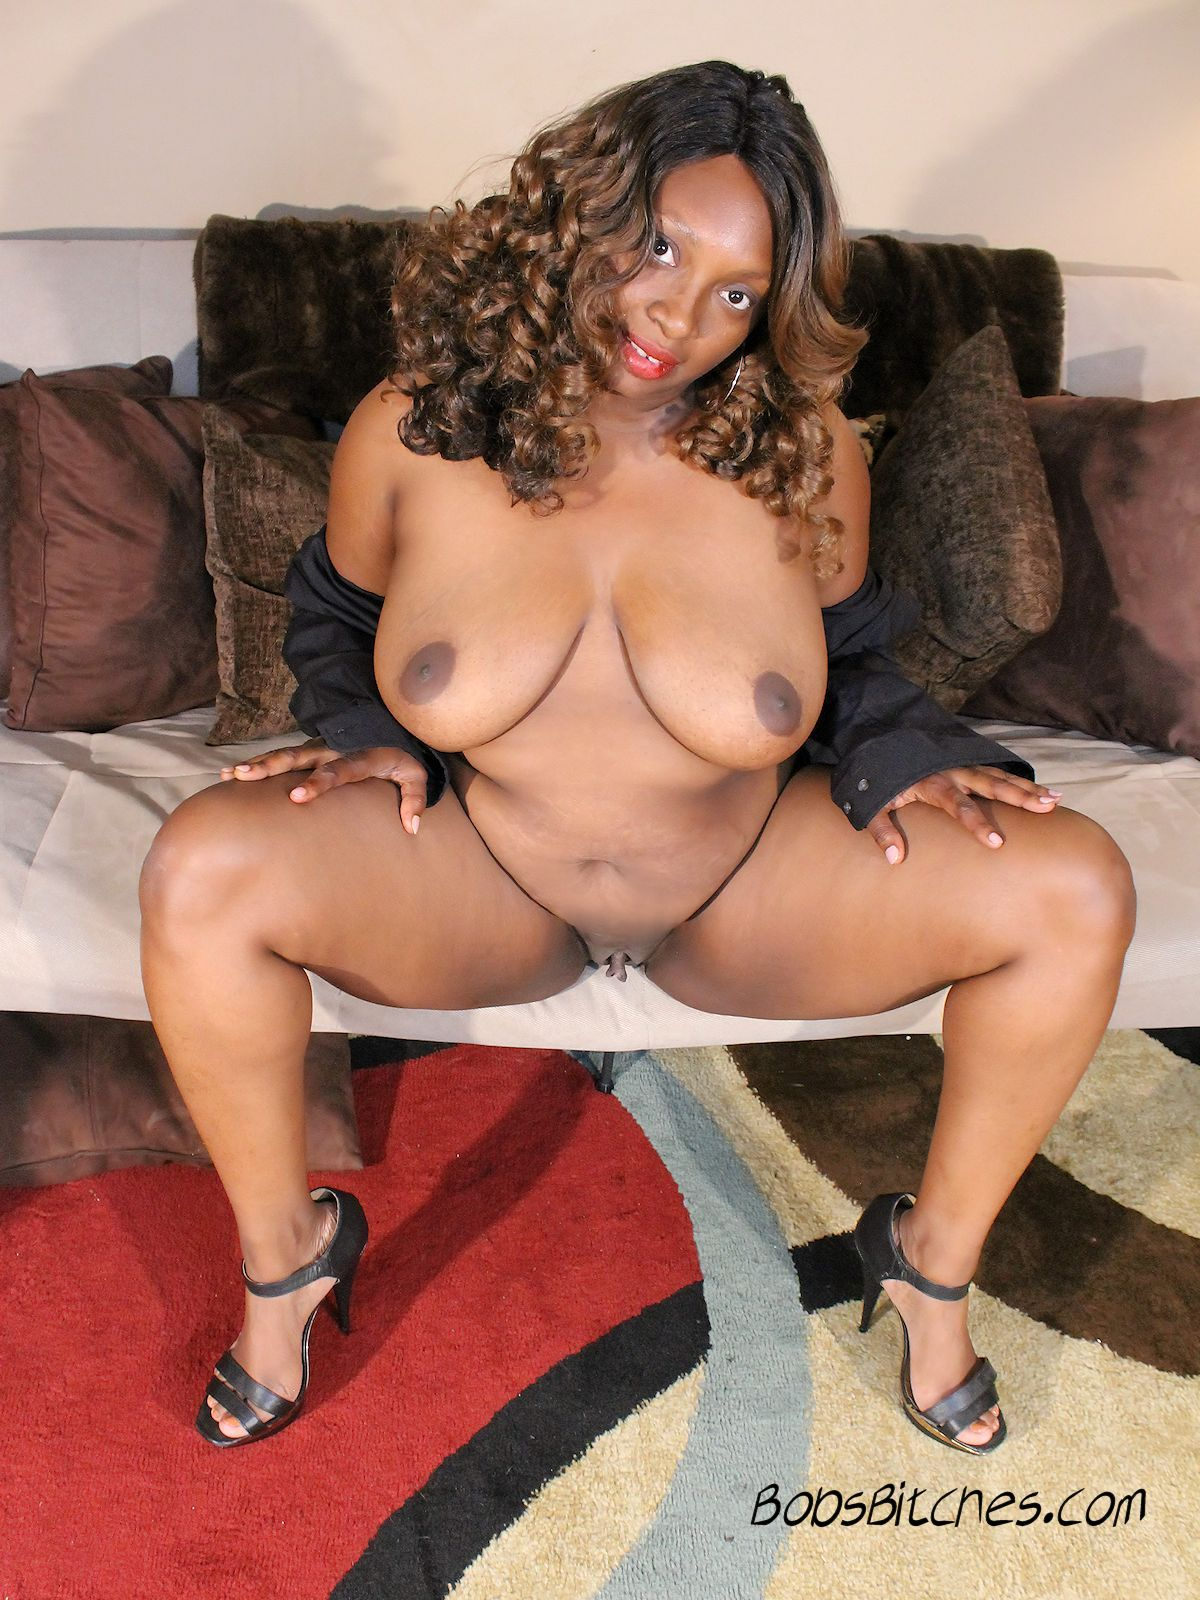 High heeled ebony mom spreads her legs and shows her large labia.